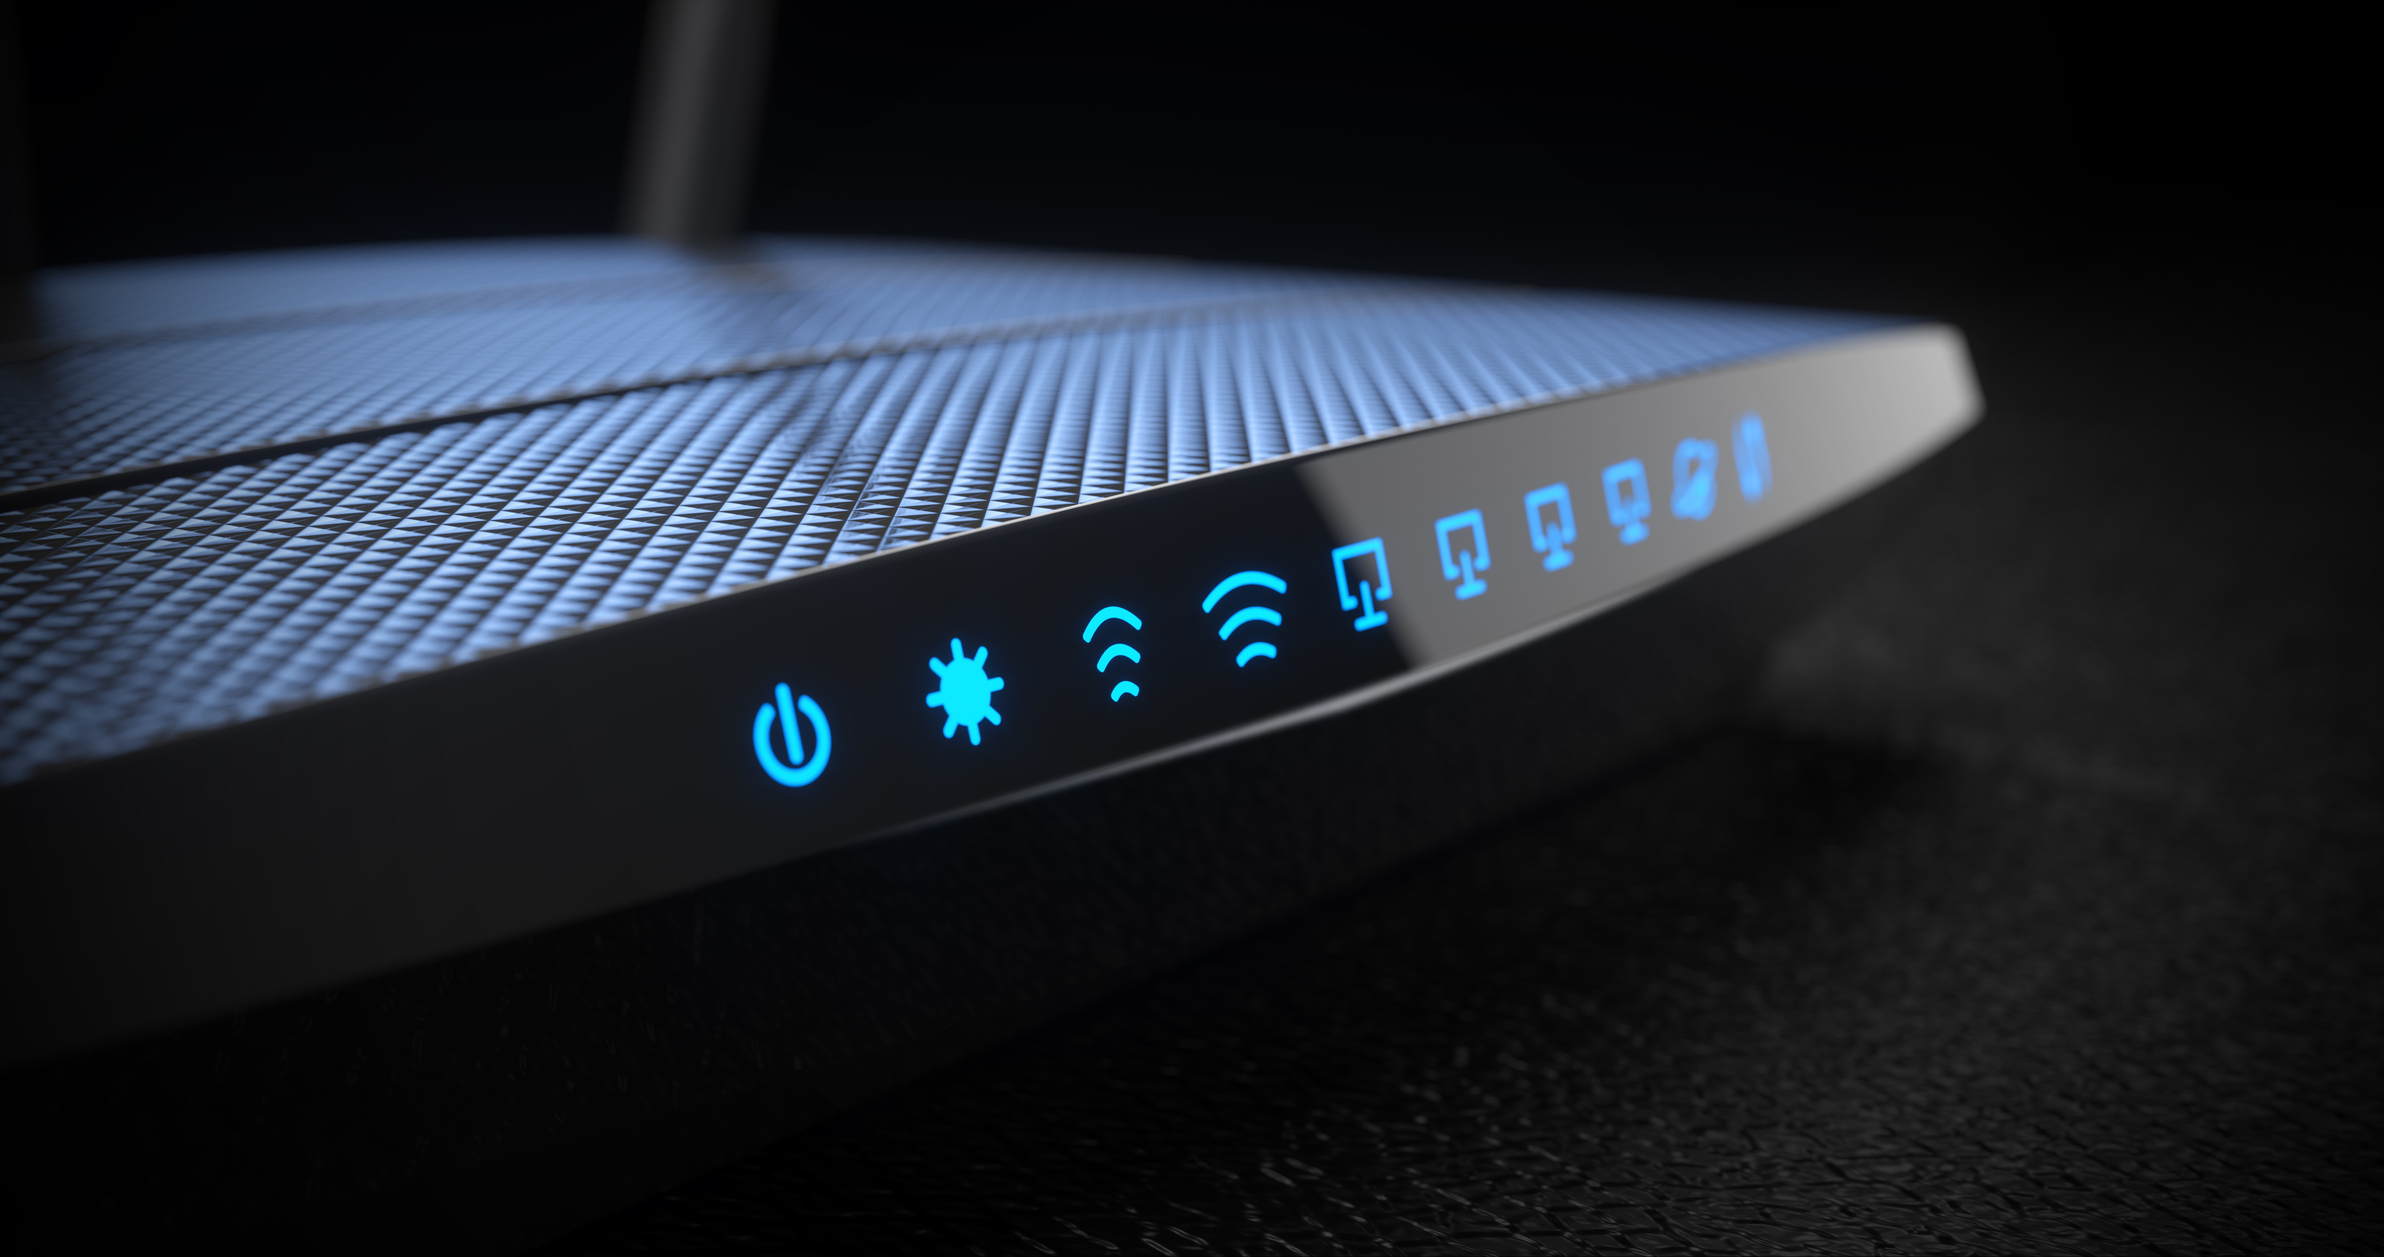 Wireless router - Xplornet